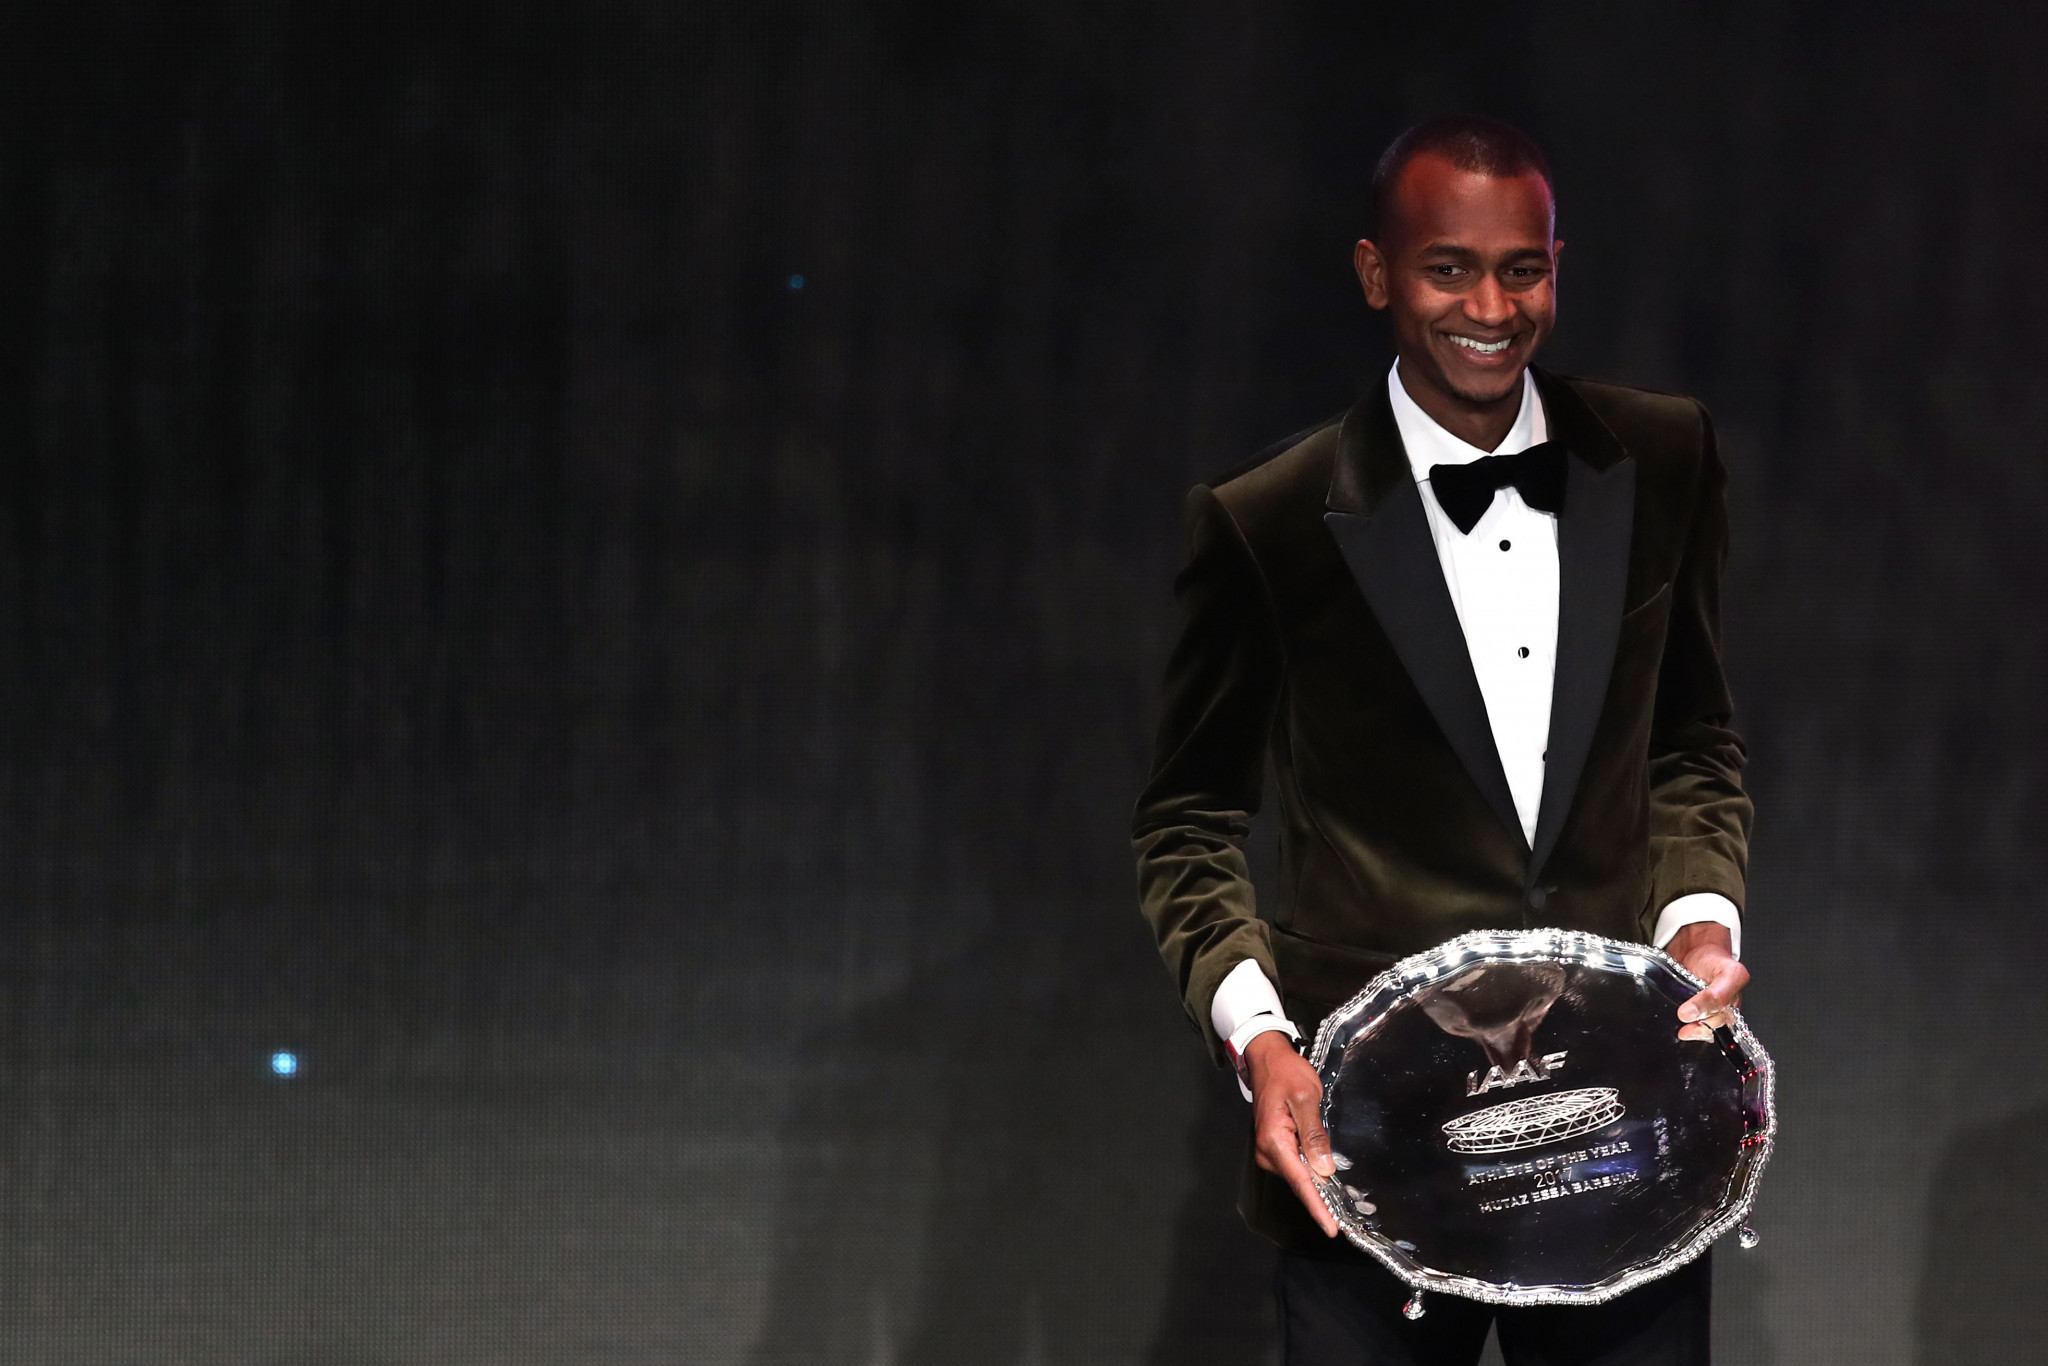 Barshim and Thiam are named IAAF World Athletes of the Year